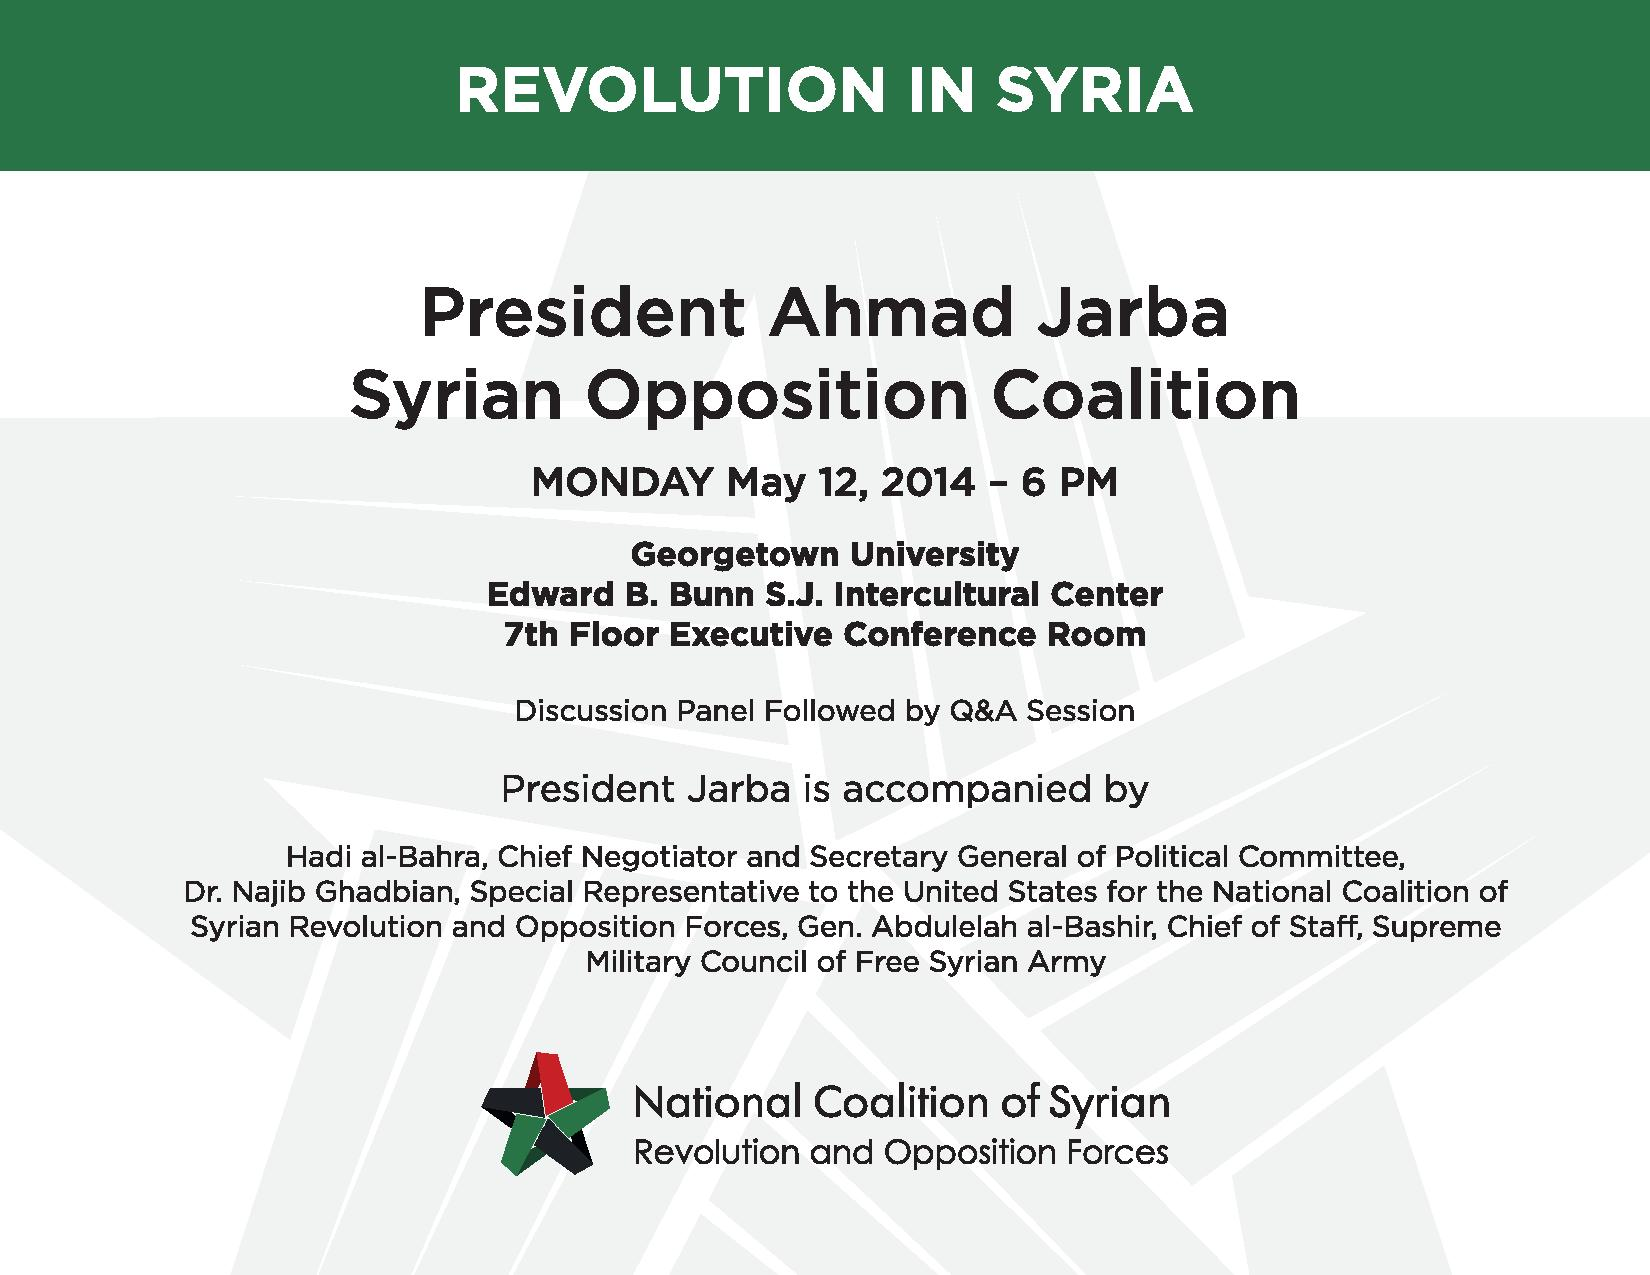 syria-flyer-page-001.jpg